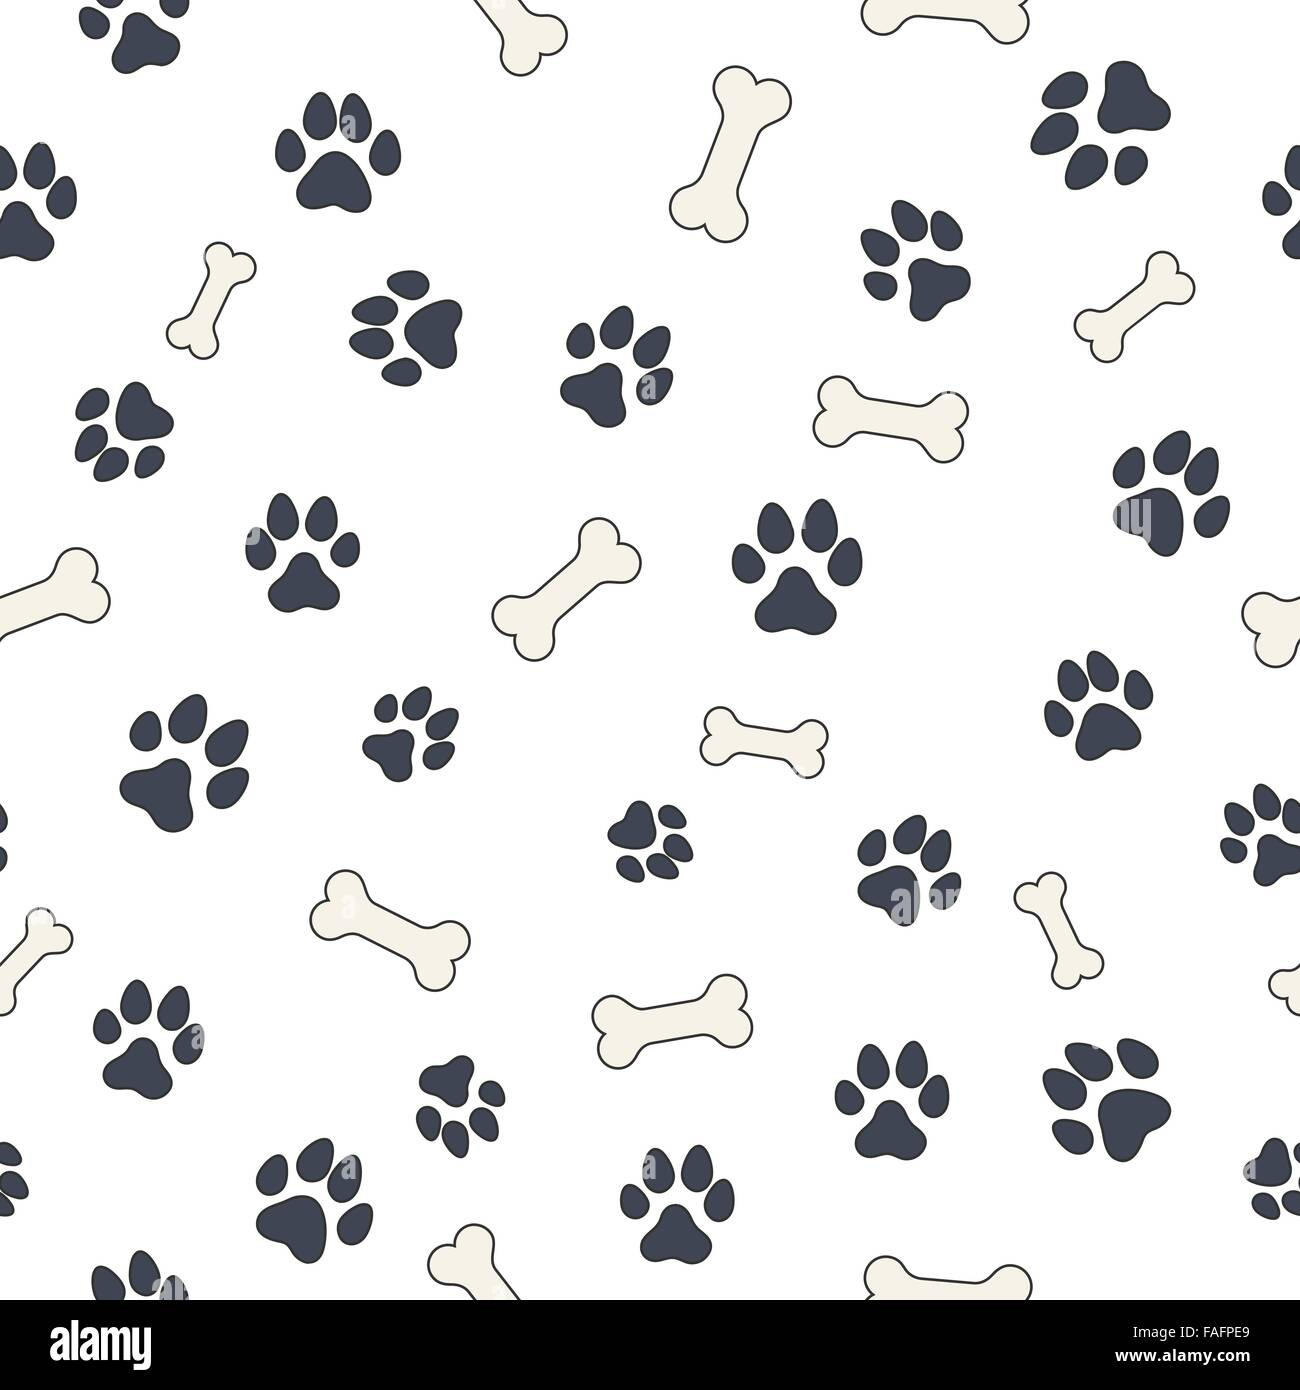 Seamless Wallpaper Pattern With Dogs Bones And Paws For Your Design